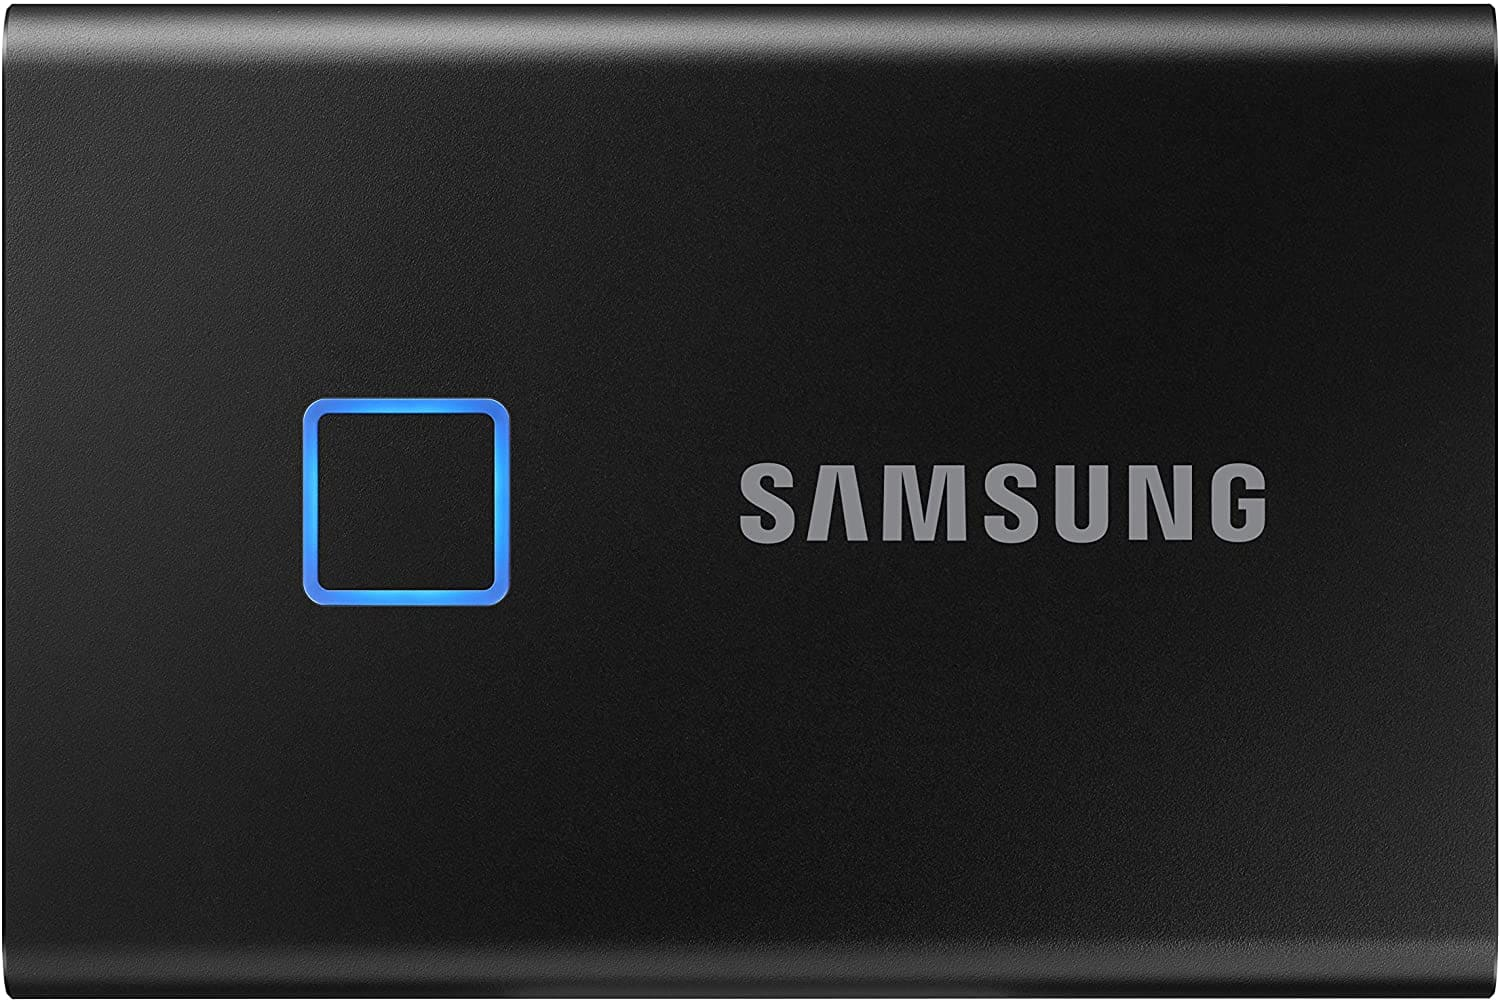 Samsung T7 500GB SSD with touch $89.99